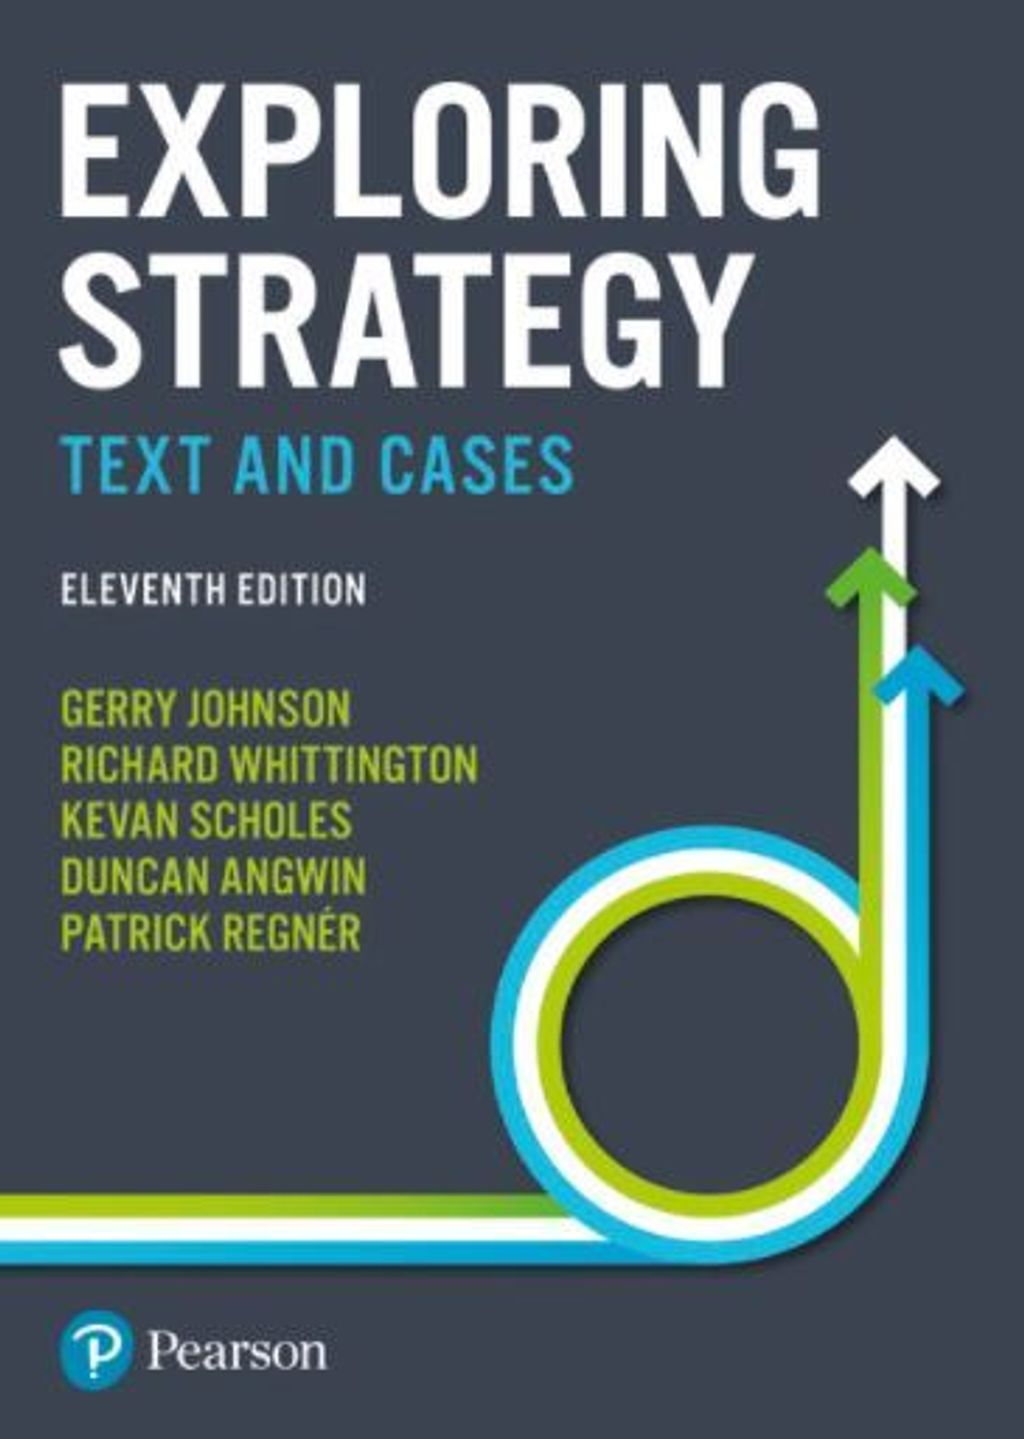 EXPLORING-STRATEGY-TEXT-AND-CASES-JOHNSON